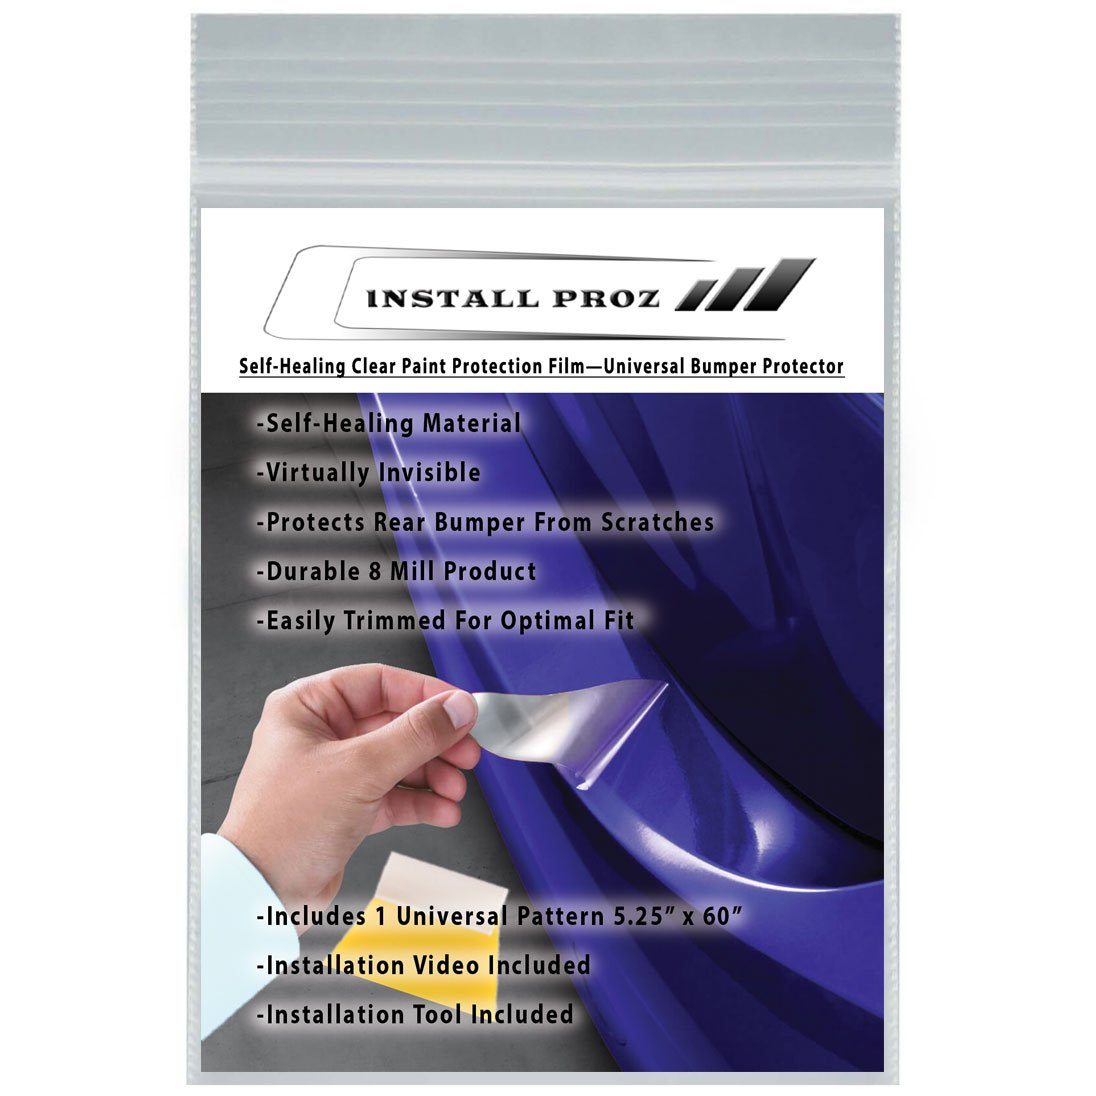 Install Proz Self-Healing Clear Paint Protection Film Kits (Bundle-Hood Strip, Door Edge, Cup, Sill, R-Bumper) by Install Proz (Image #5)